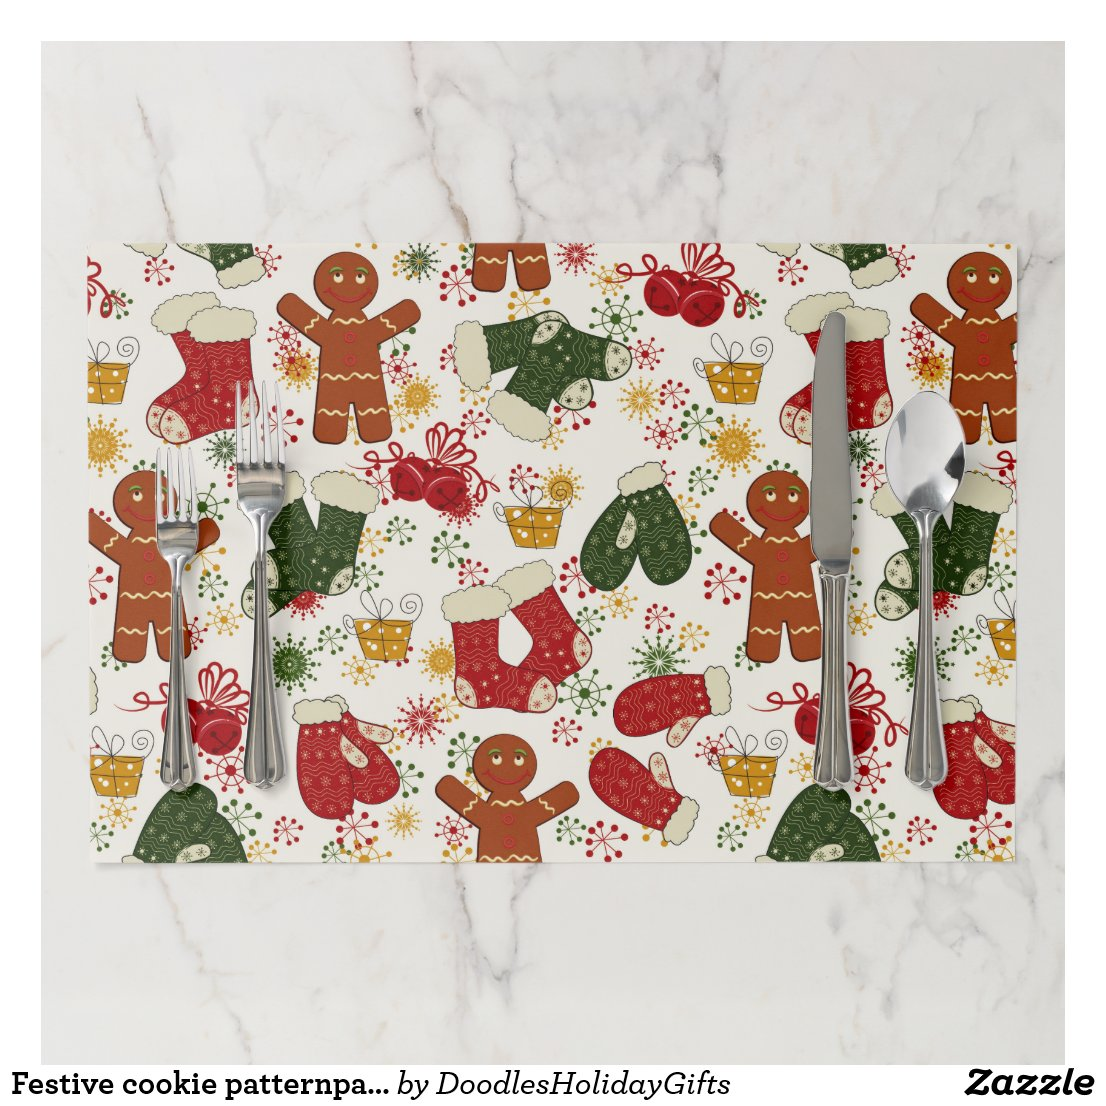 Festive cookie patternparty Christmas placemat